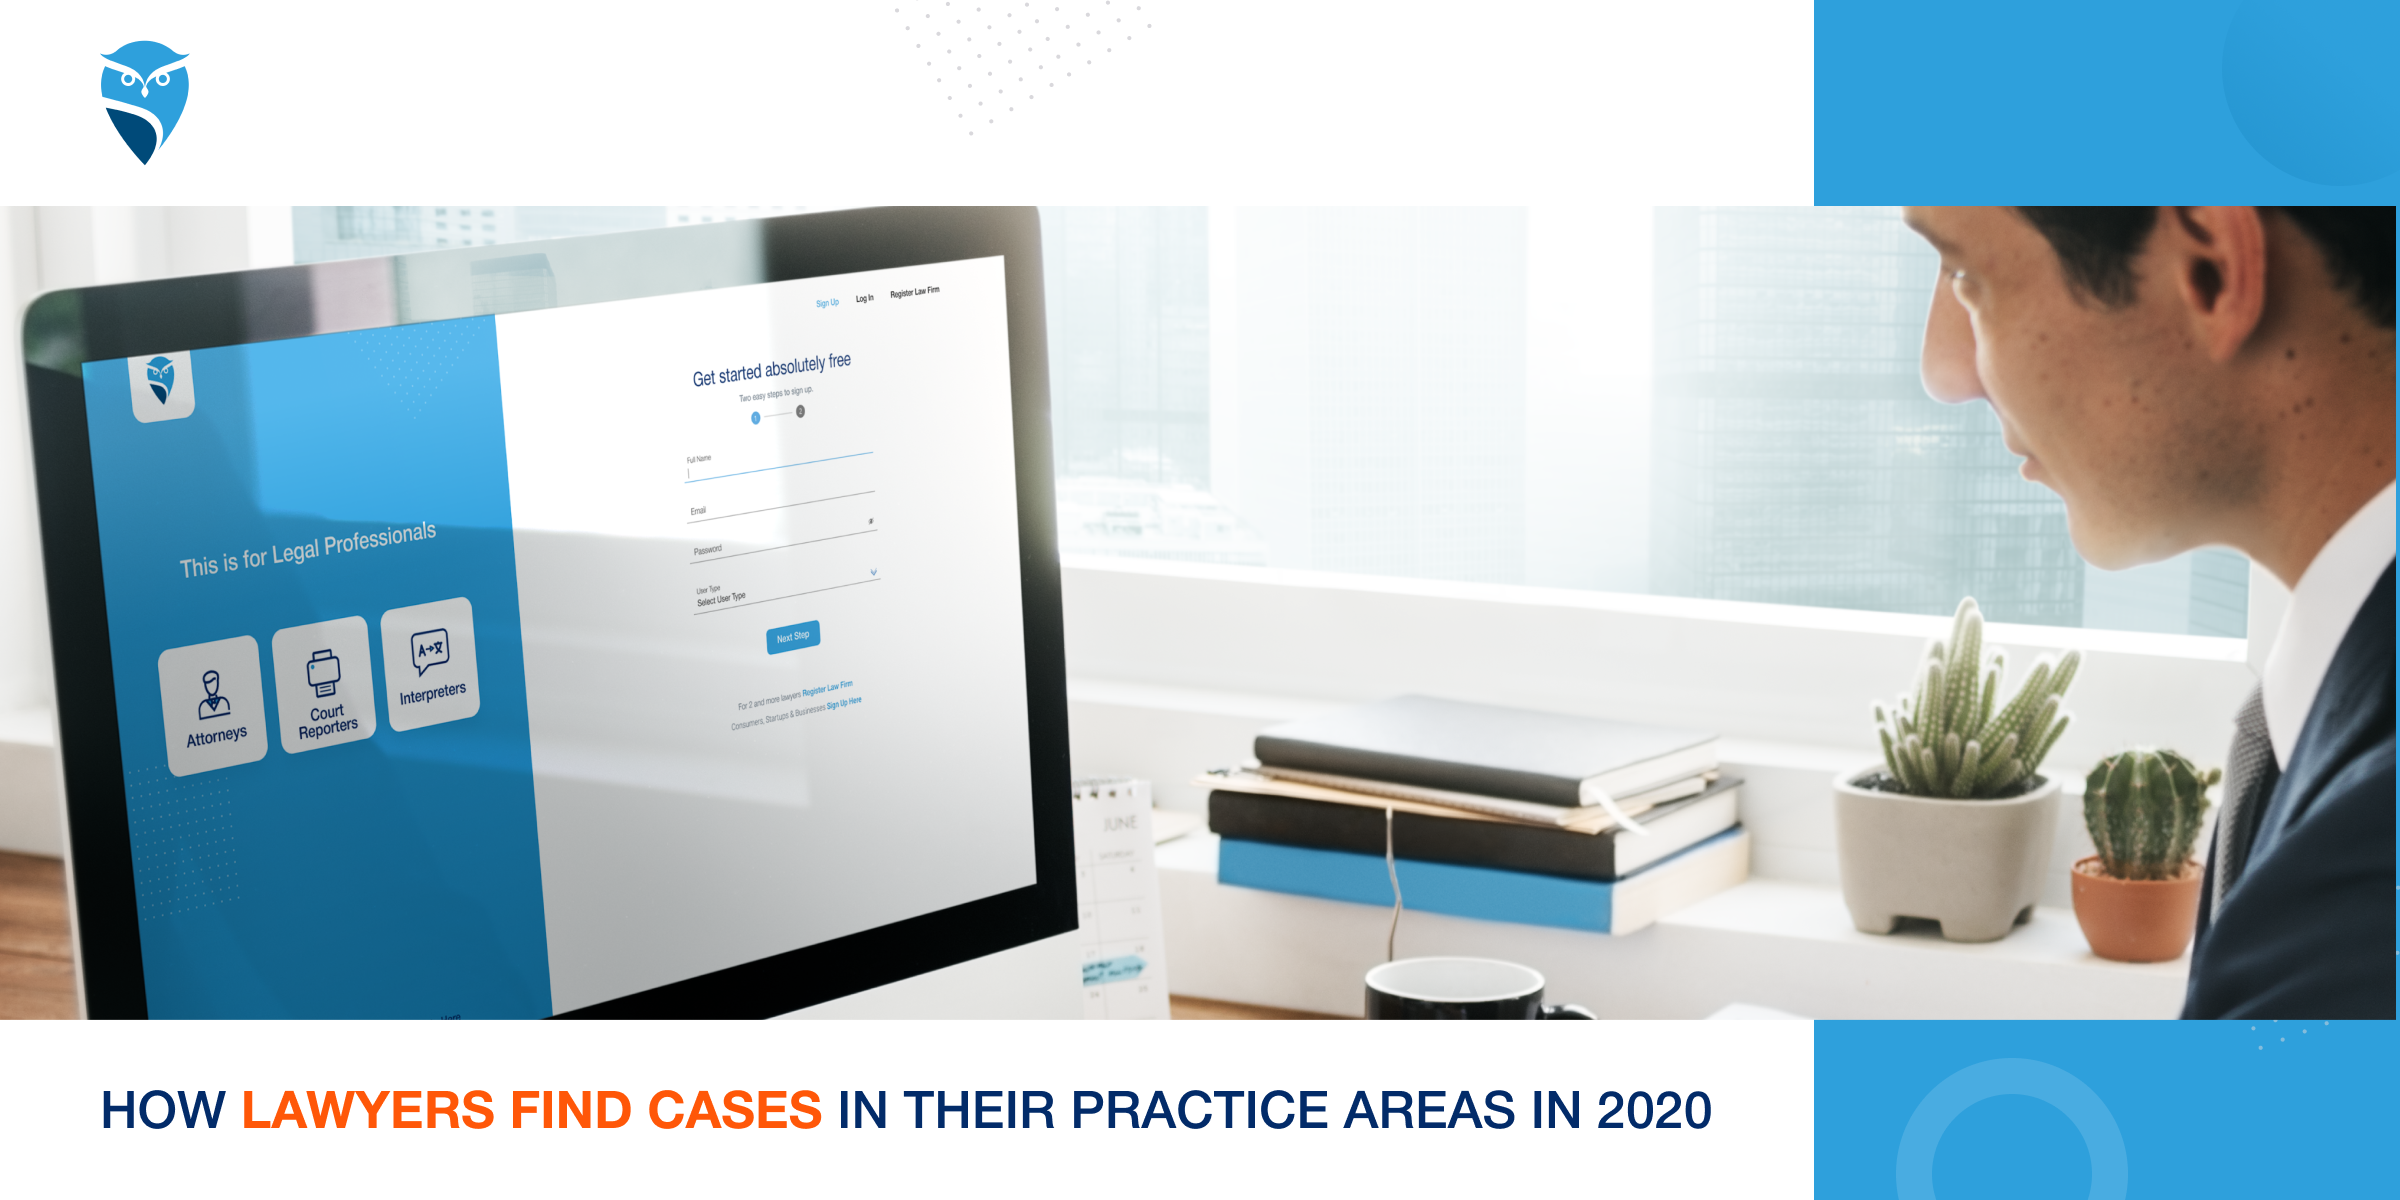 How Lawyers Find Cases in Their Practice Areas in 2020